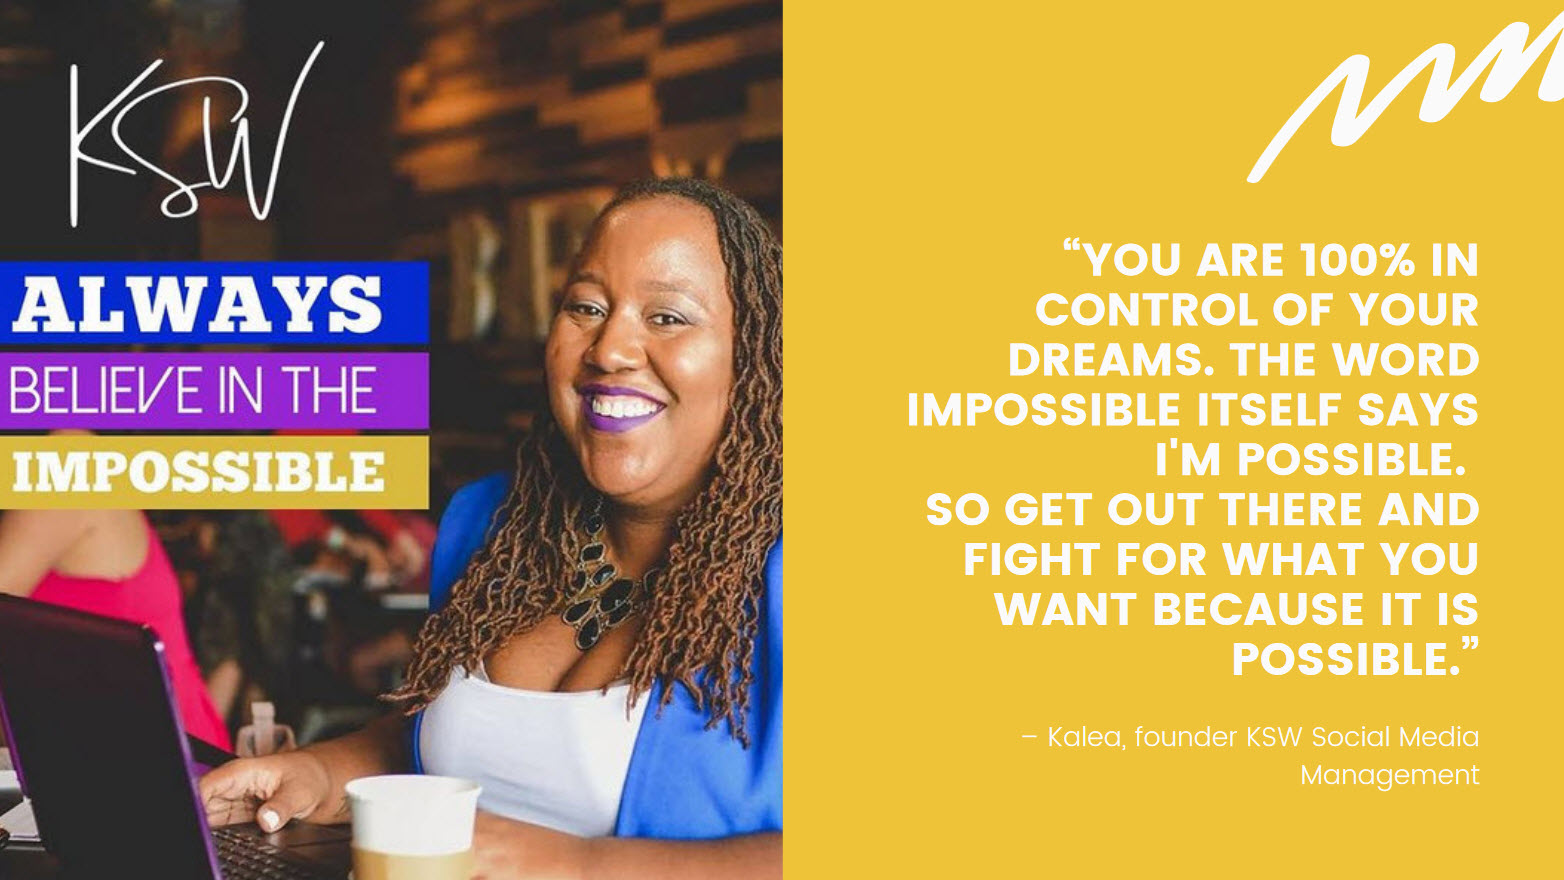 """Quote: """"You are 100% in control of your dreams. The word impossible itself says i'm possible. So get out there and fight for what you want because it is possible."""" – Kalea, KSW Social Media Management"""